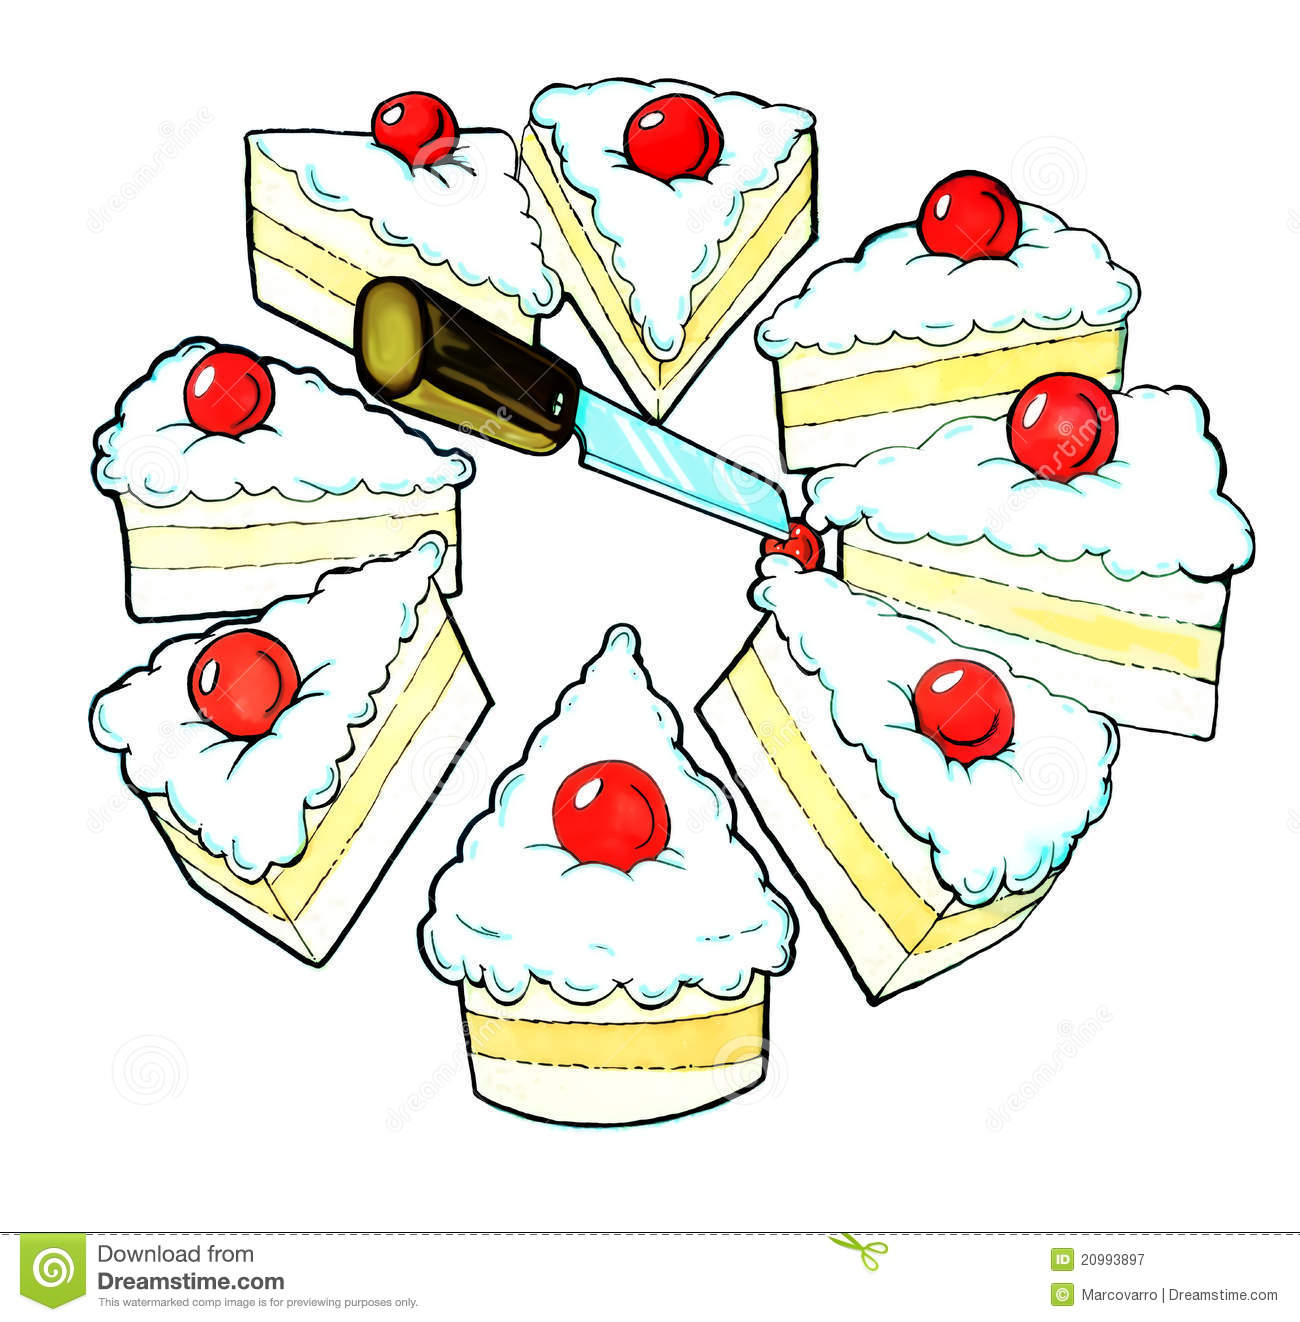 Cake Knife Clipart : Cake And Knife Royalty Free Stock Photography - Image ...